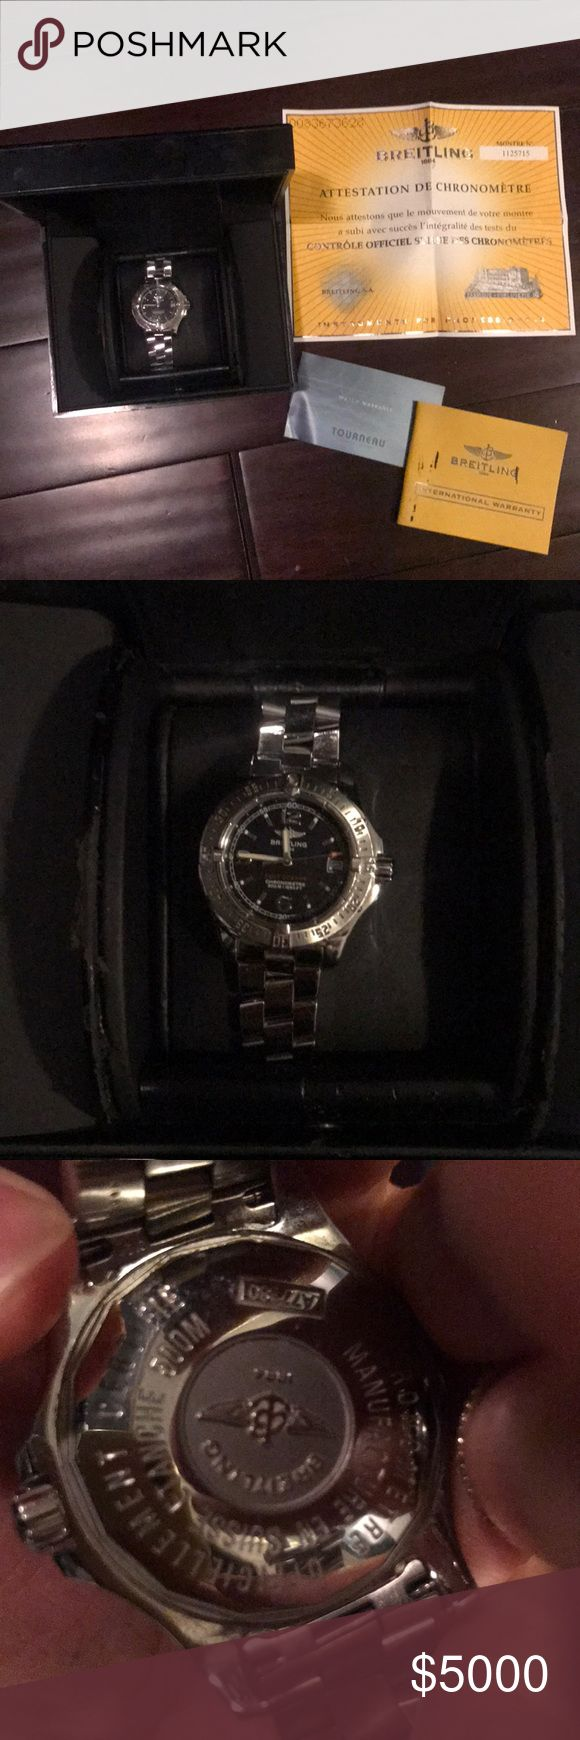 Brietling watch Used a handful of times, with box and original papers/warranty papers. 100% authentic!  Hasn't been serviced in a while. Took out some links but cant find them. Watch still in very good condition. Breitling Accessories Watches